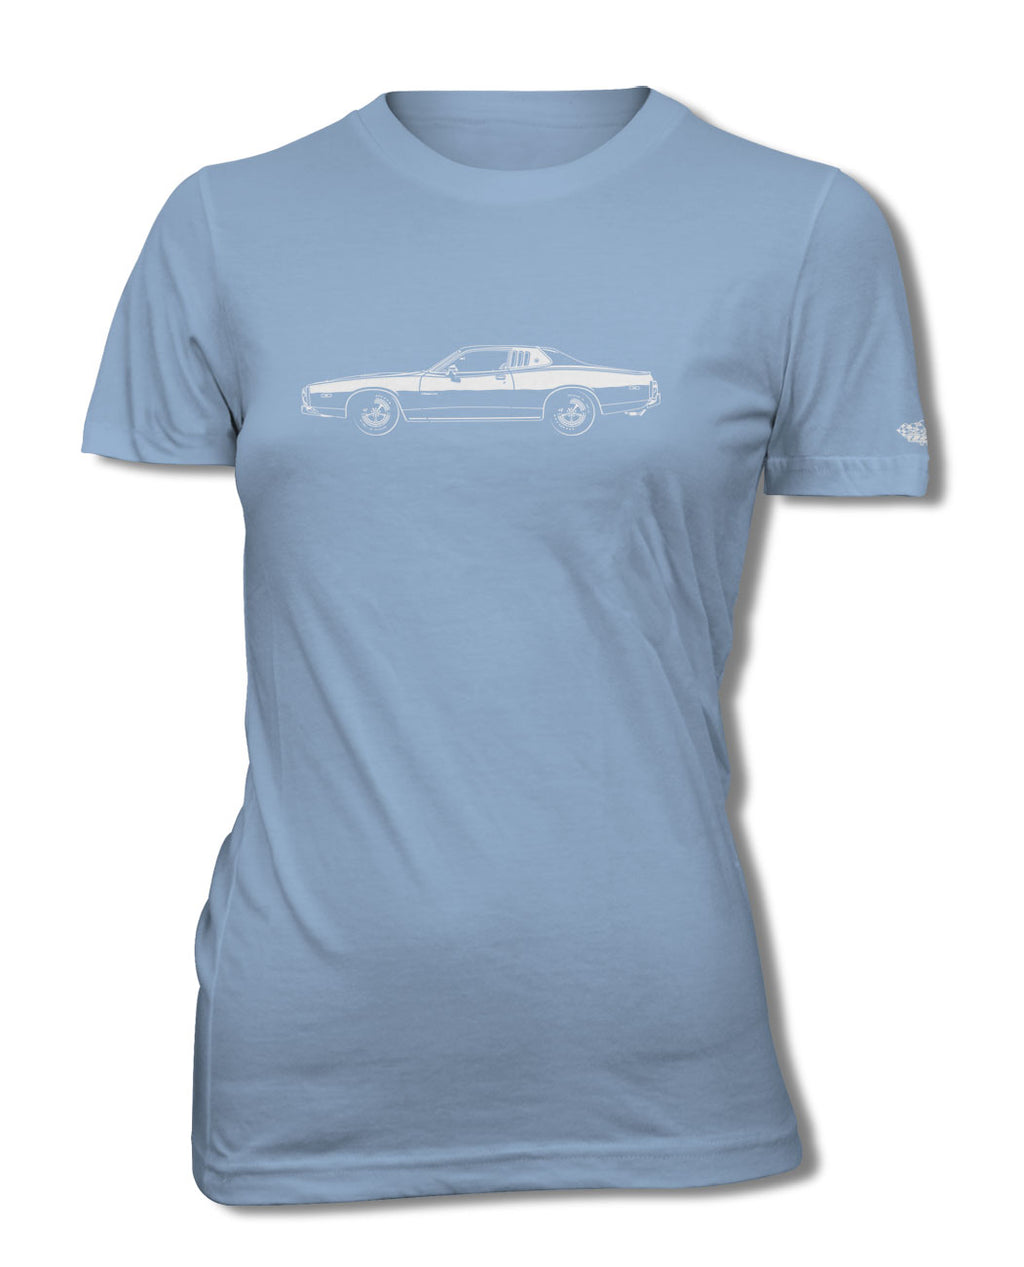 1973 Dodge Charger SE Hardtop T-Shirt - Women - Side View